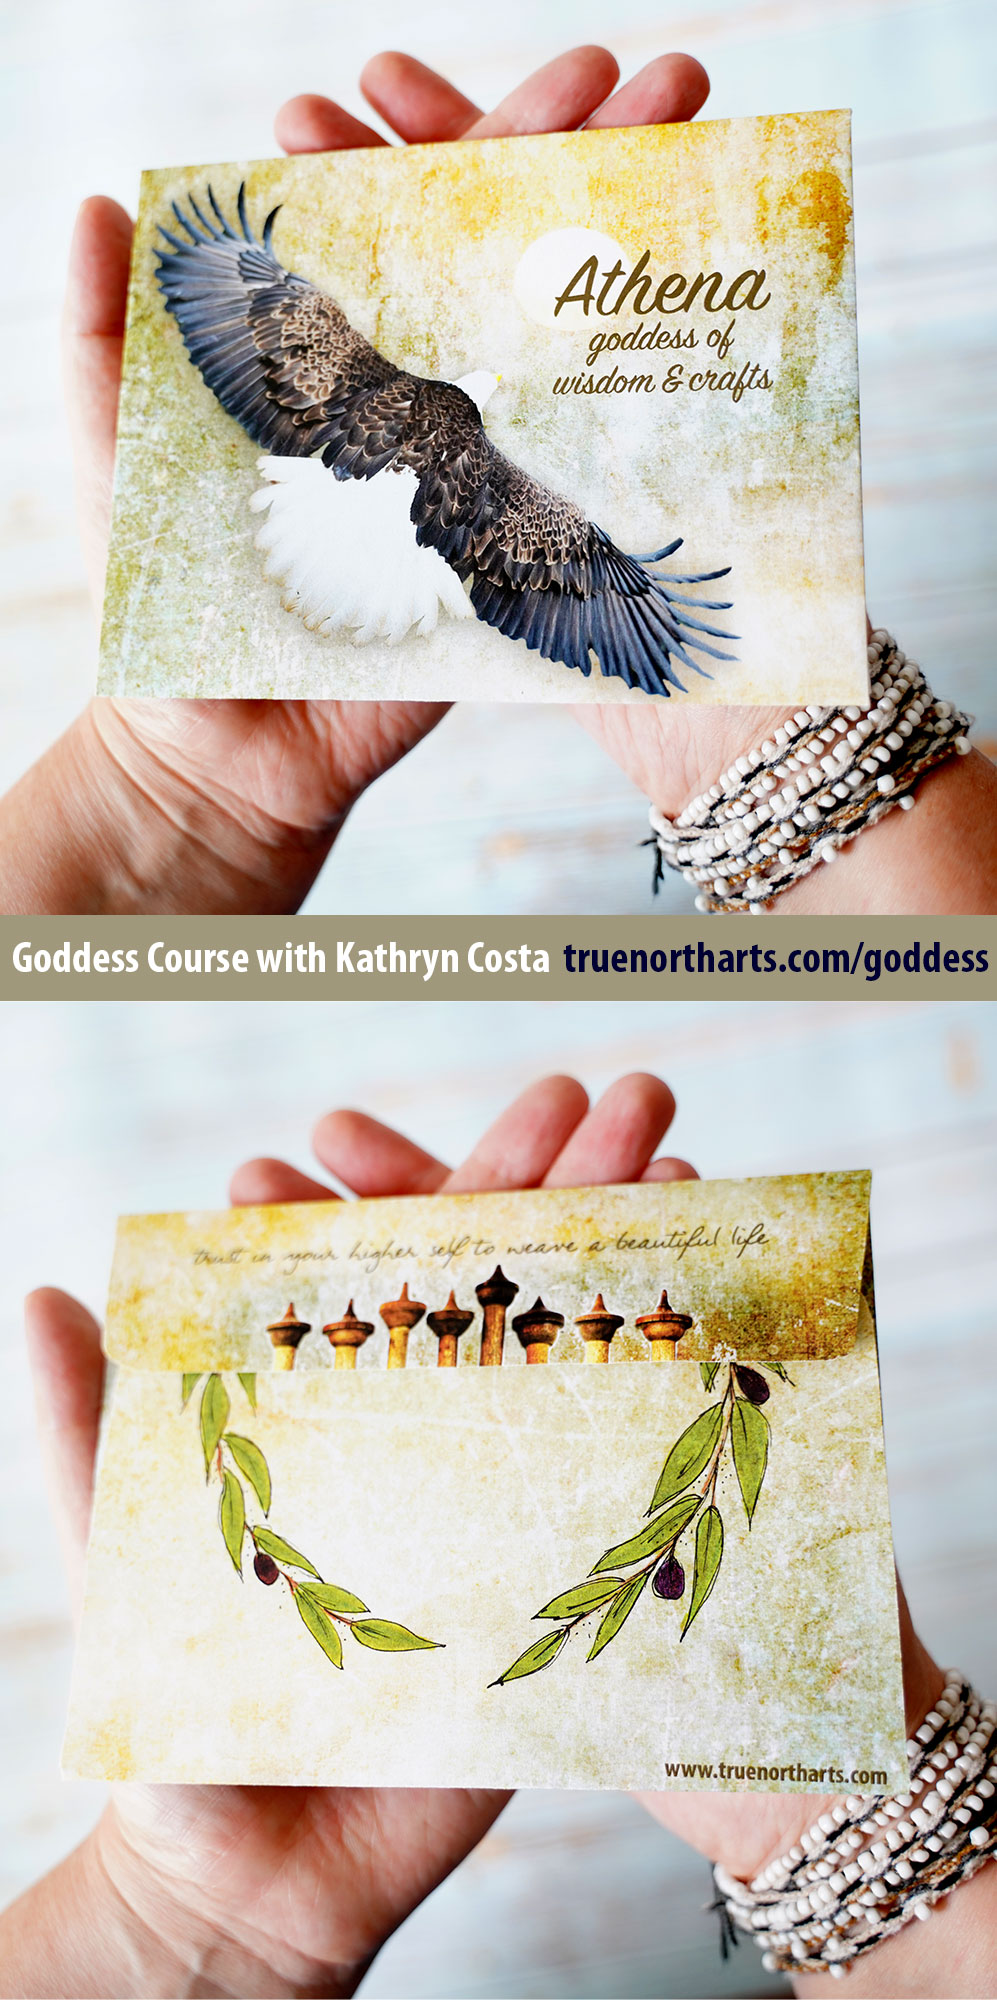 The beautiful envelopes that you get for the Athena lesson when you enroll in the Goddess Course with Kathryn Costa.